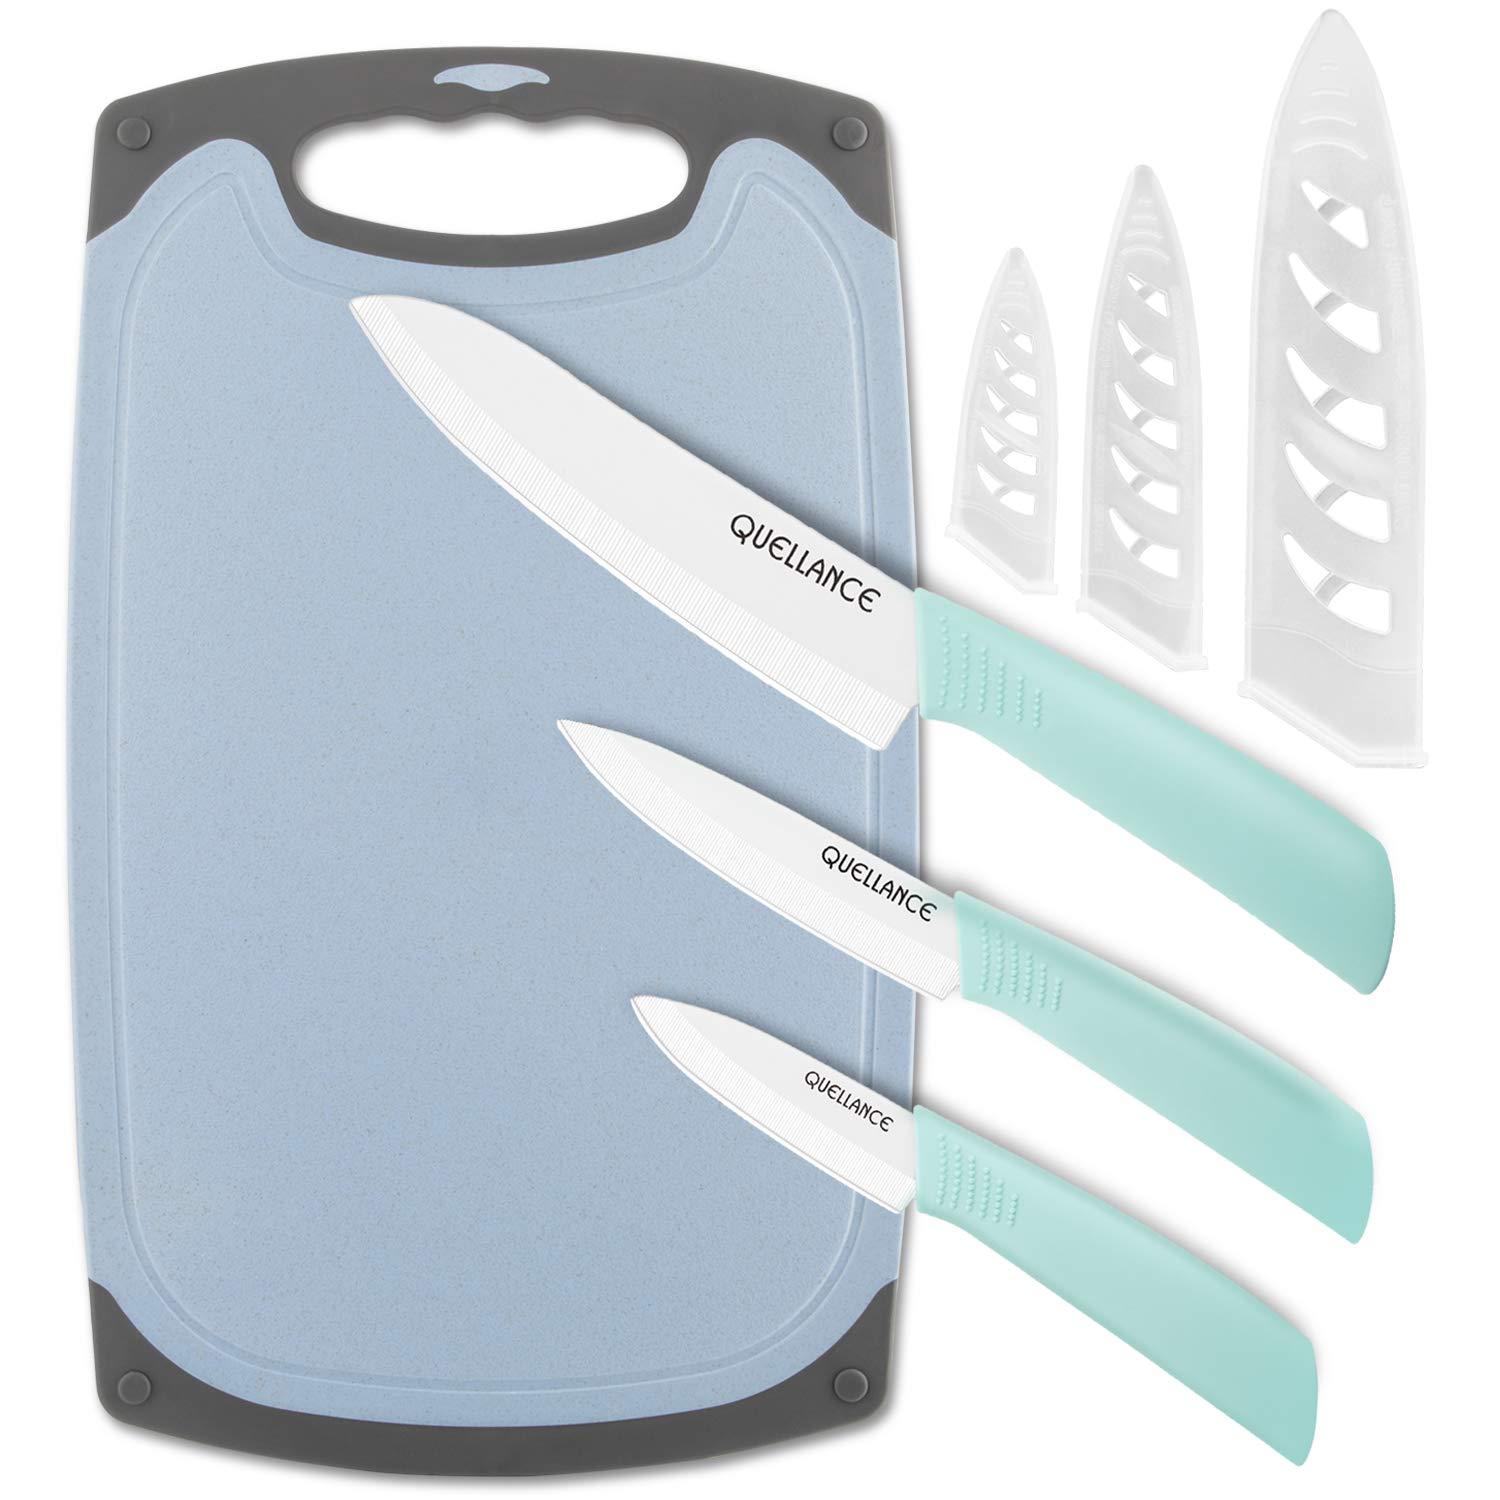 Ceramic Knife Set, Kitchen Knives with Matching Sheath Covers and Cutting Board, Very Sharp Ceramic Chef Knife, 6'' Chef Knife, 4'' Utility Knife, 3'' Paring Knife and 1 Rectangle Chopping Board